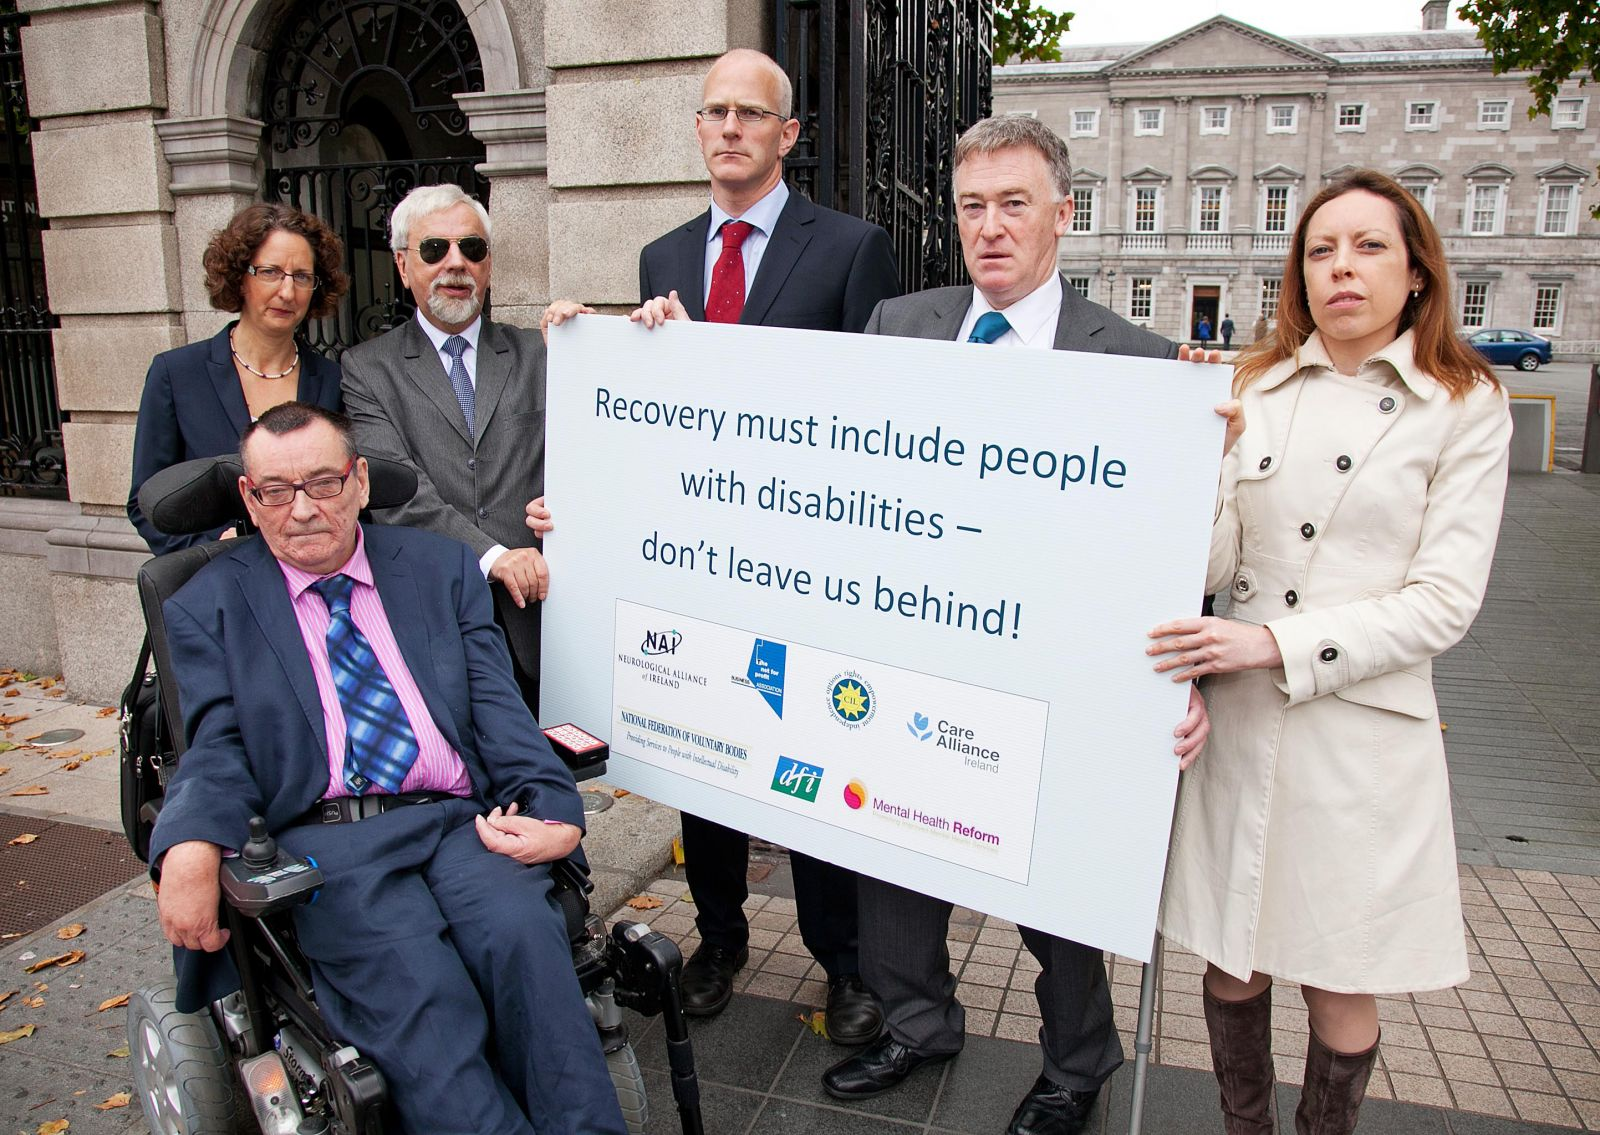 Sign stating: Recovery must include people with disabilities - don't leave us behind: held by Michael McCabe: Center for Independent Living, Shari McDaid : Mental Health Reform, Des Kenny : Not for Profit Business Association, Liam O'Sullivan : Care Alliance Ireland, John Dolan : Disability Federation of Ireland, Mags Rogers : Neurological Alliance of Ireland